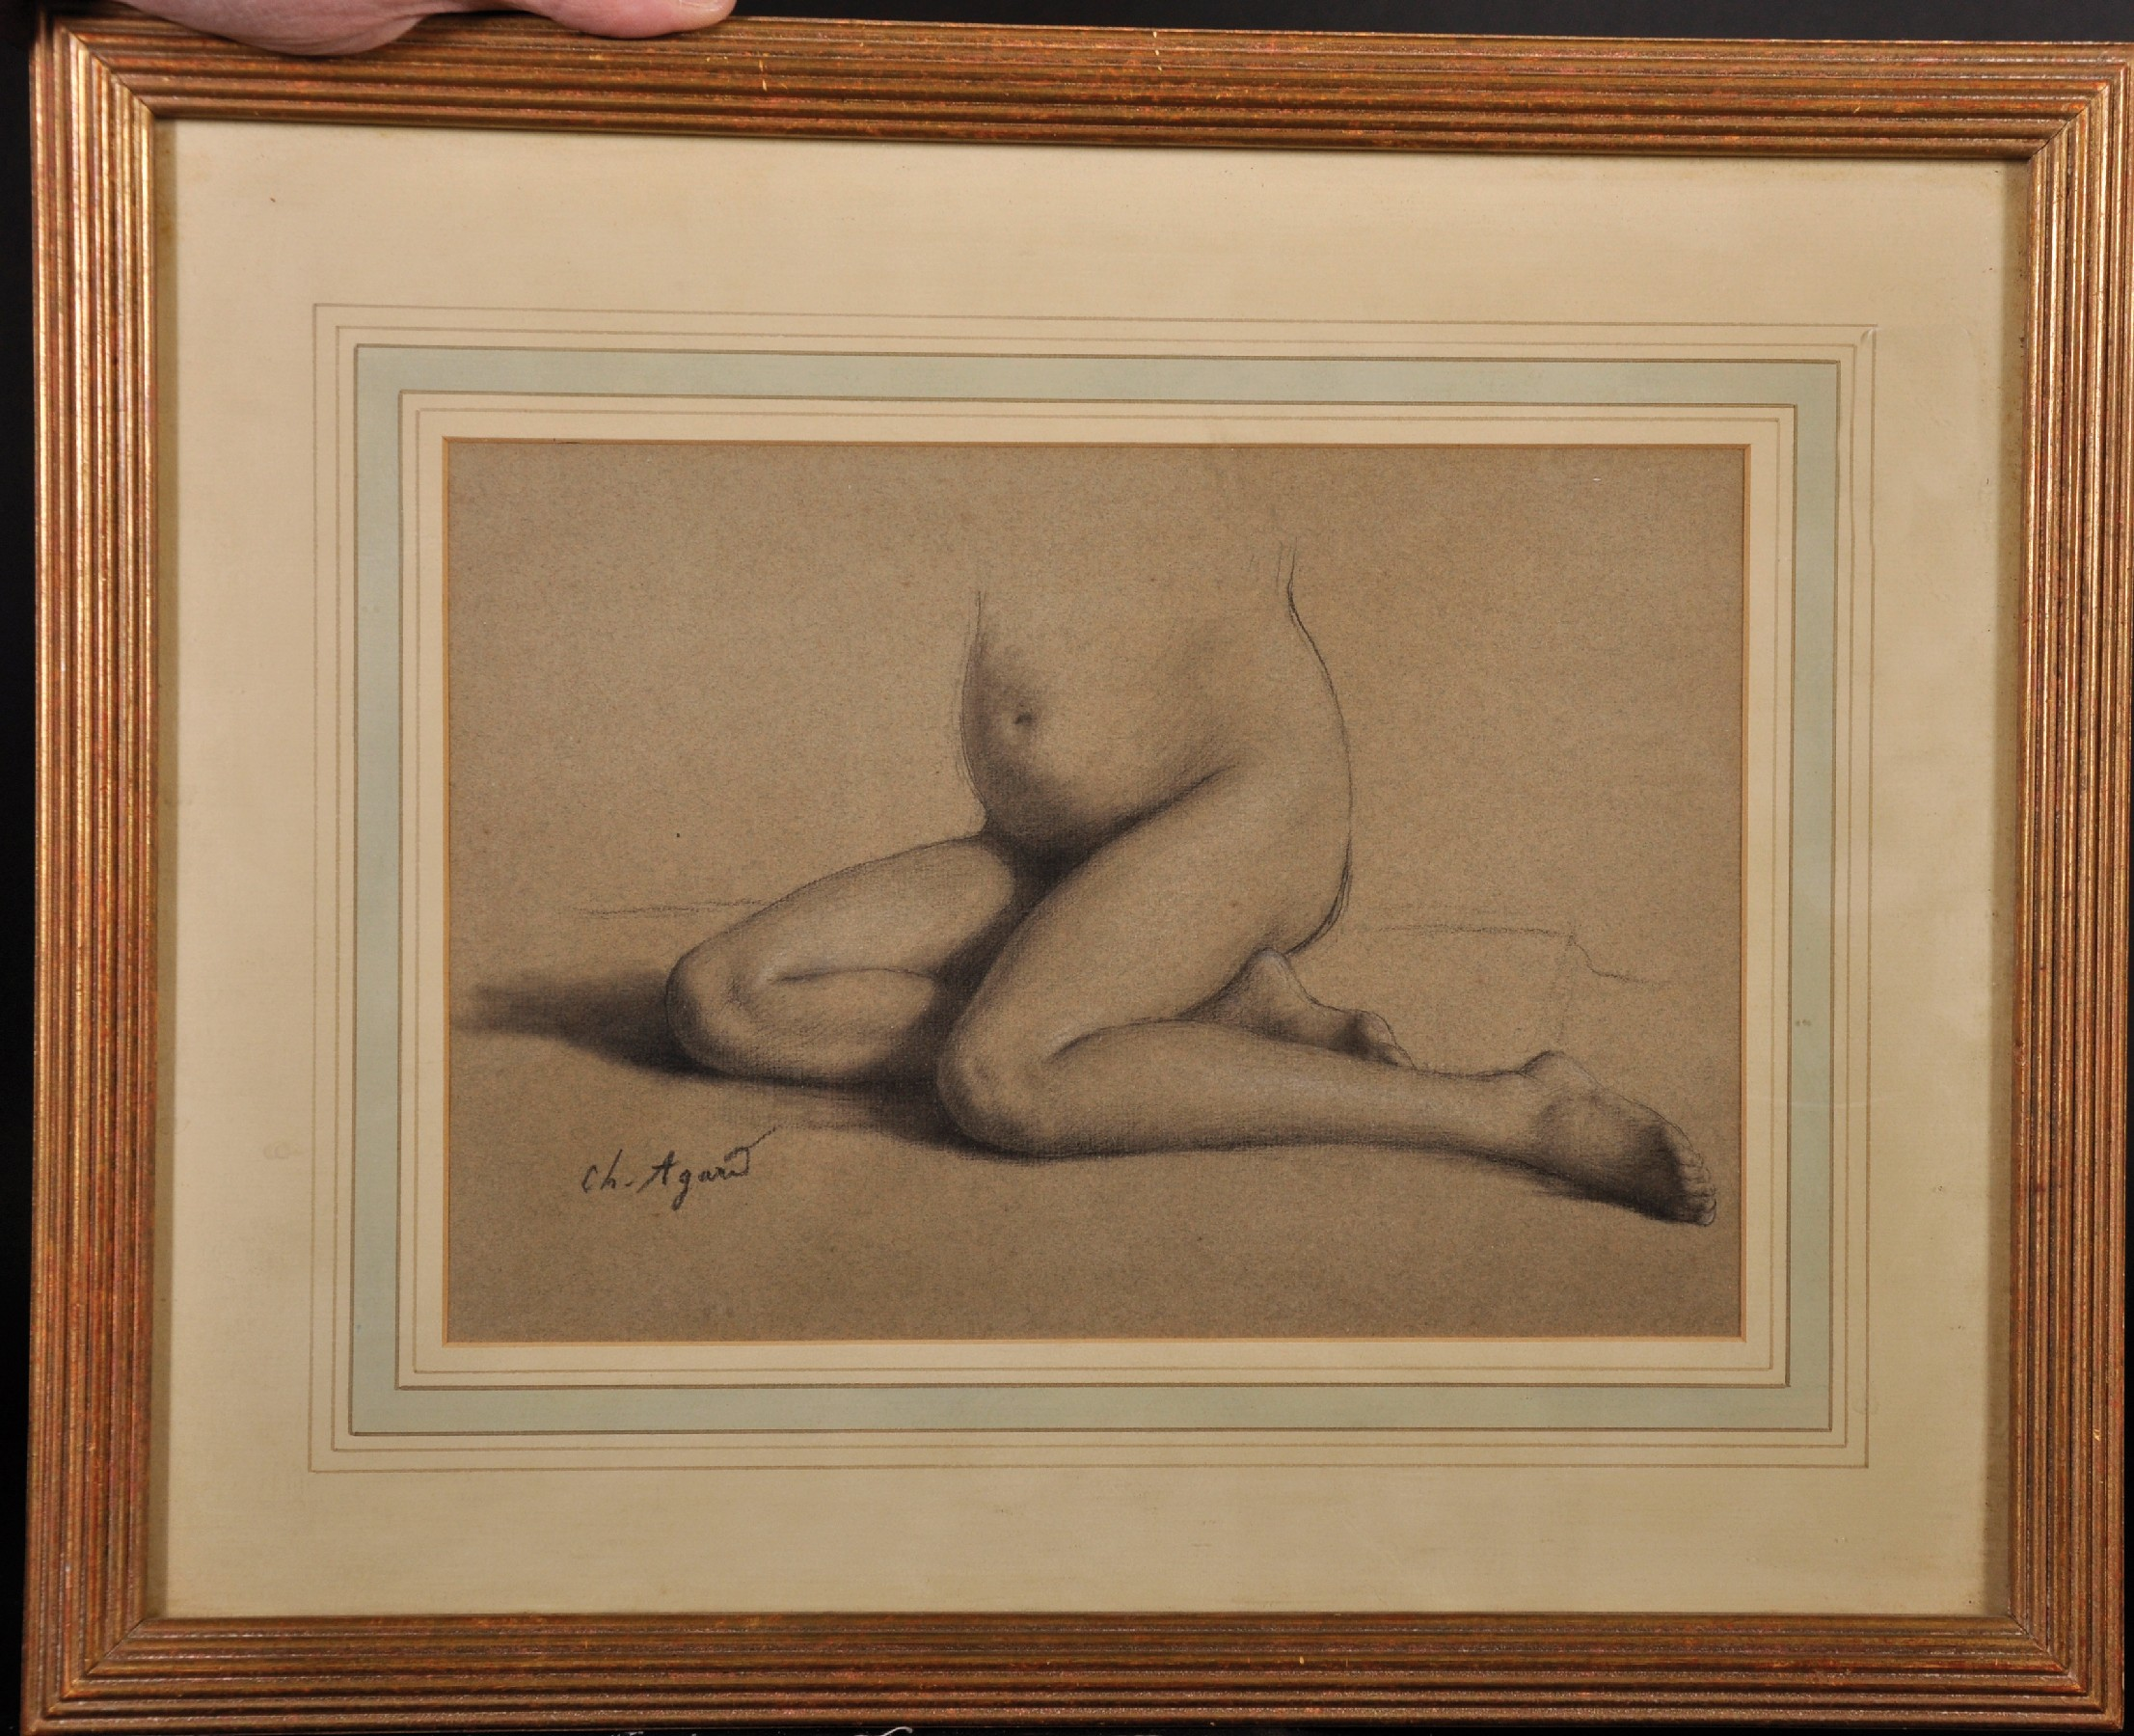 """Charles Jean Agard (1866-1950) French. Study of a Lower Half of a Nude Female, Pencil, Signed, 7.75"""" - Image 2 of 4"""